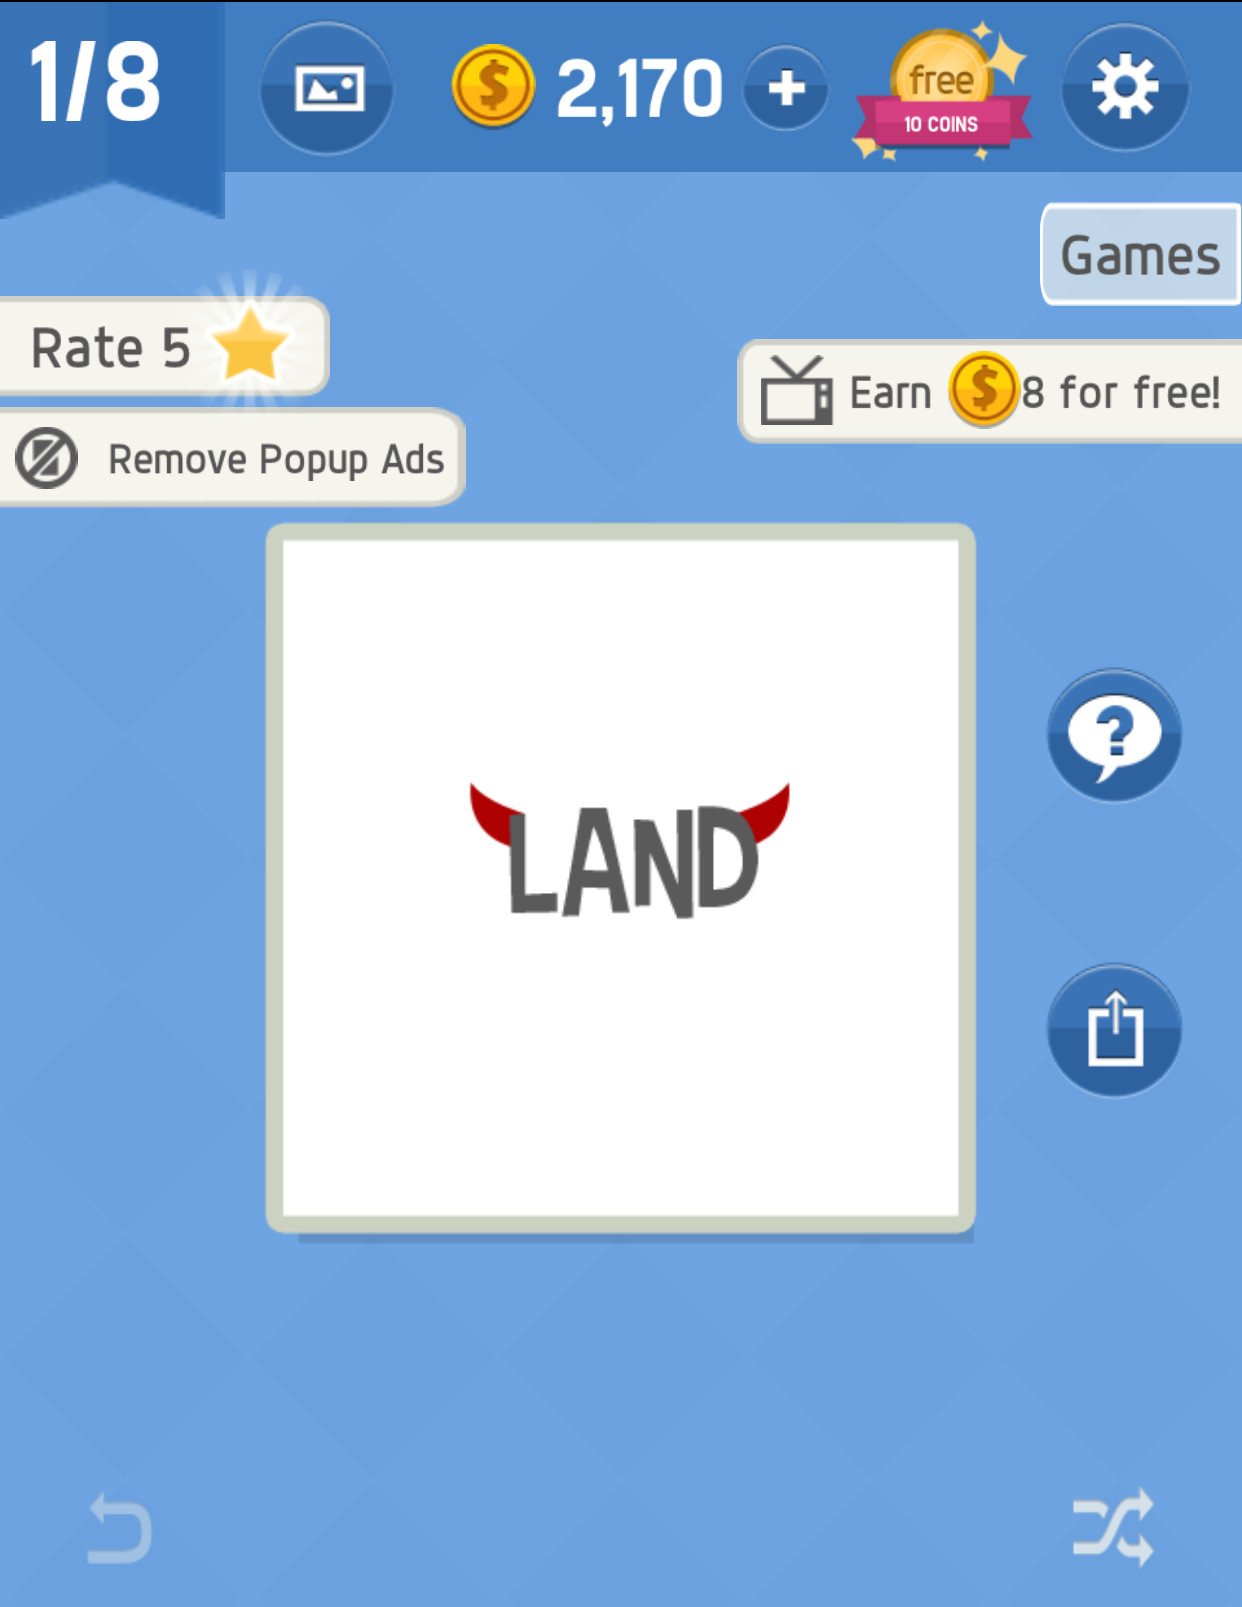 Game Pack 3 level 1 Answer in Word tricky - zilliongamer your game guide